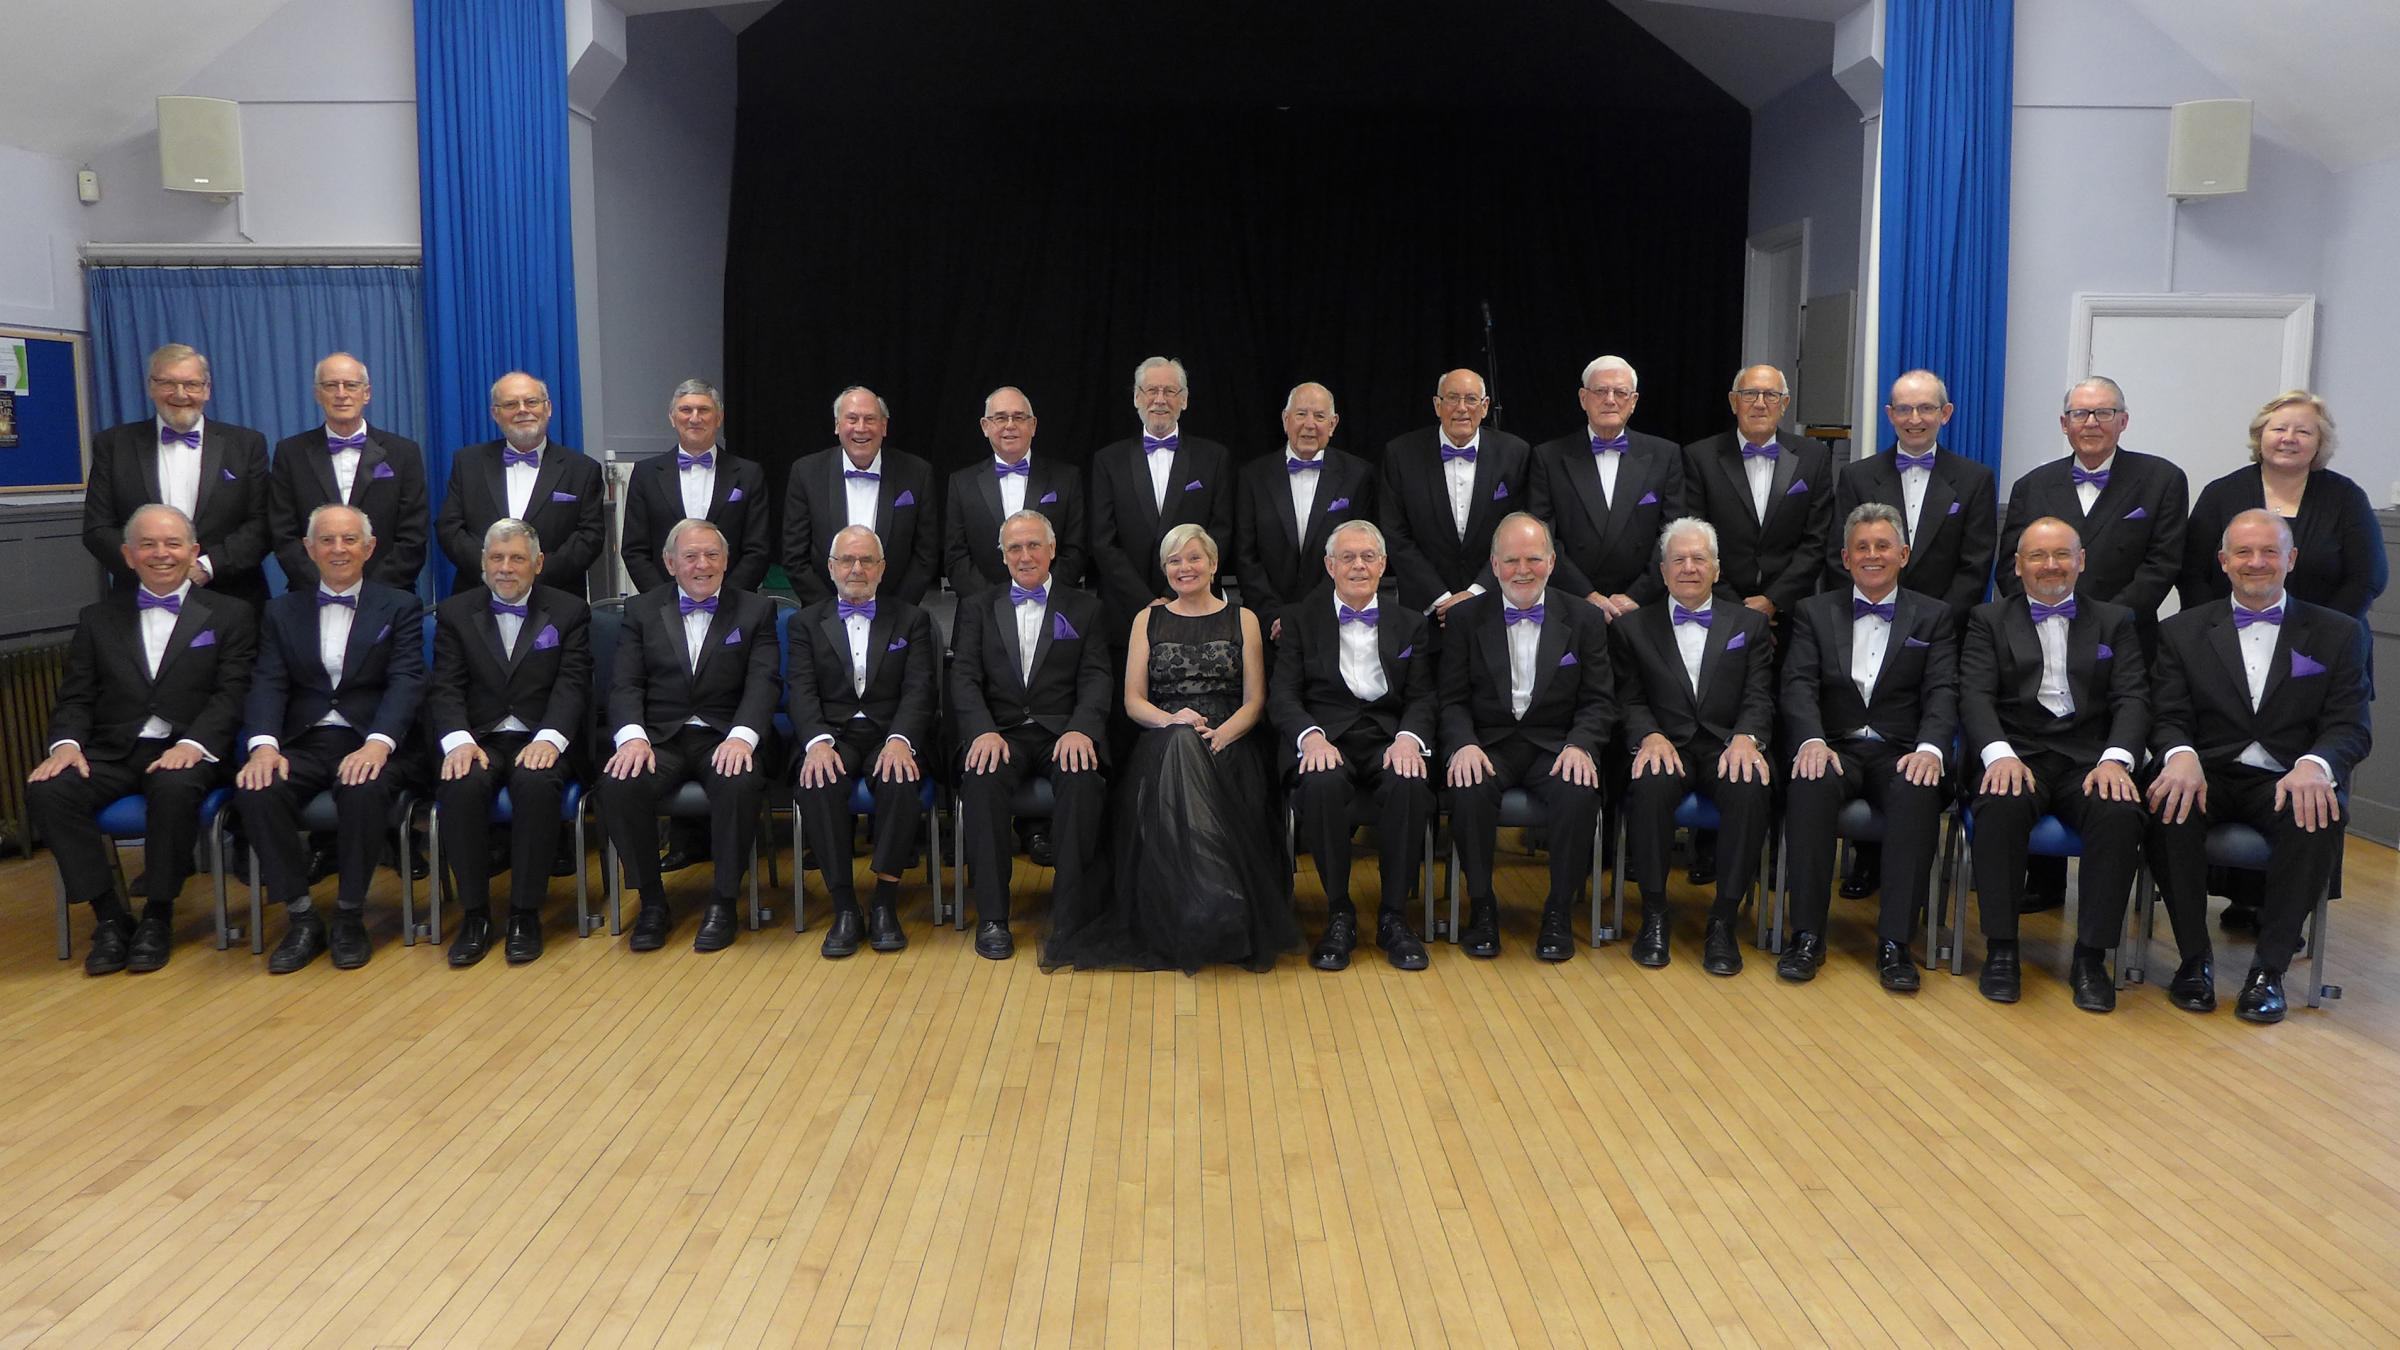 'Bourne2Sing' Choir Concert